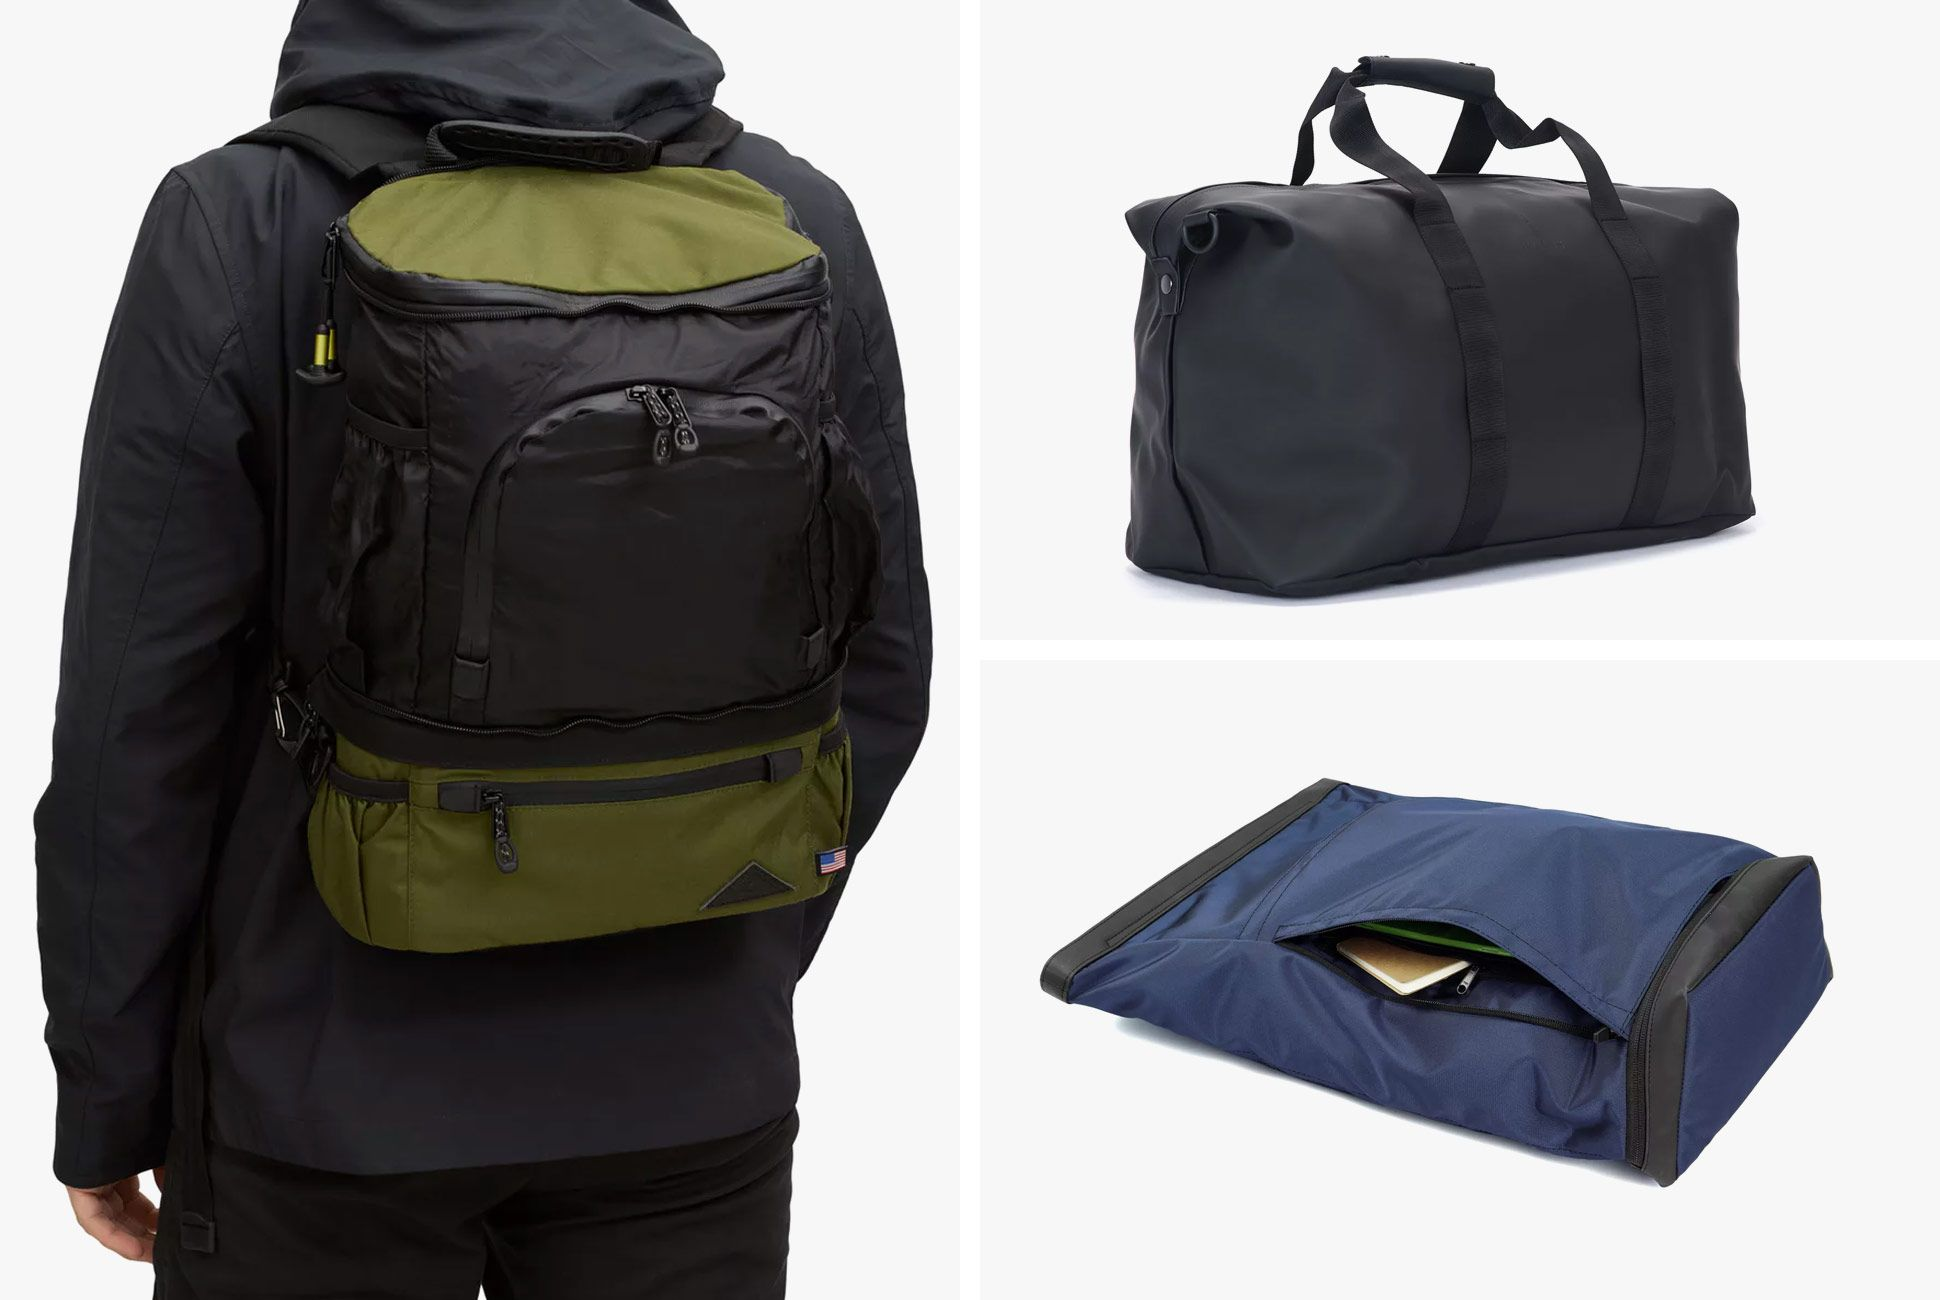 2018 Travel Gear 6 Killer Travel Bags Are On Sale Now At Huckberry